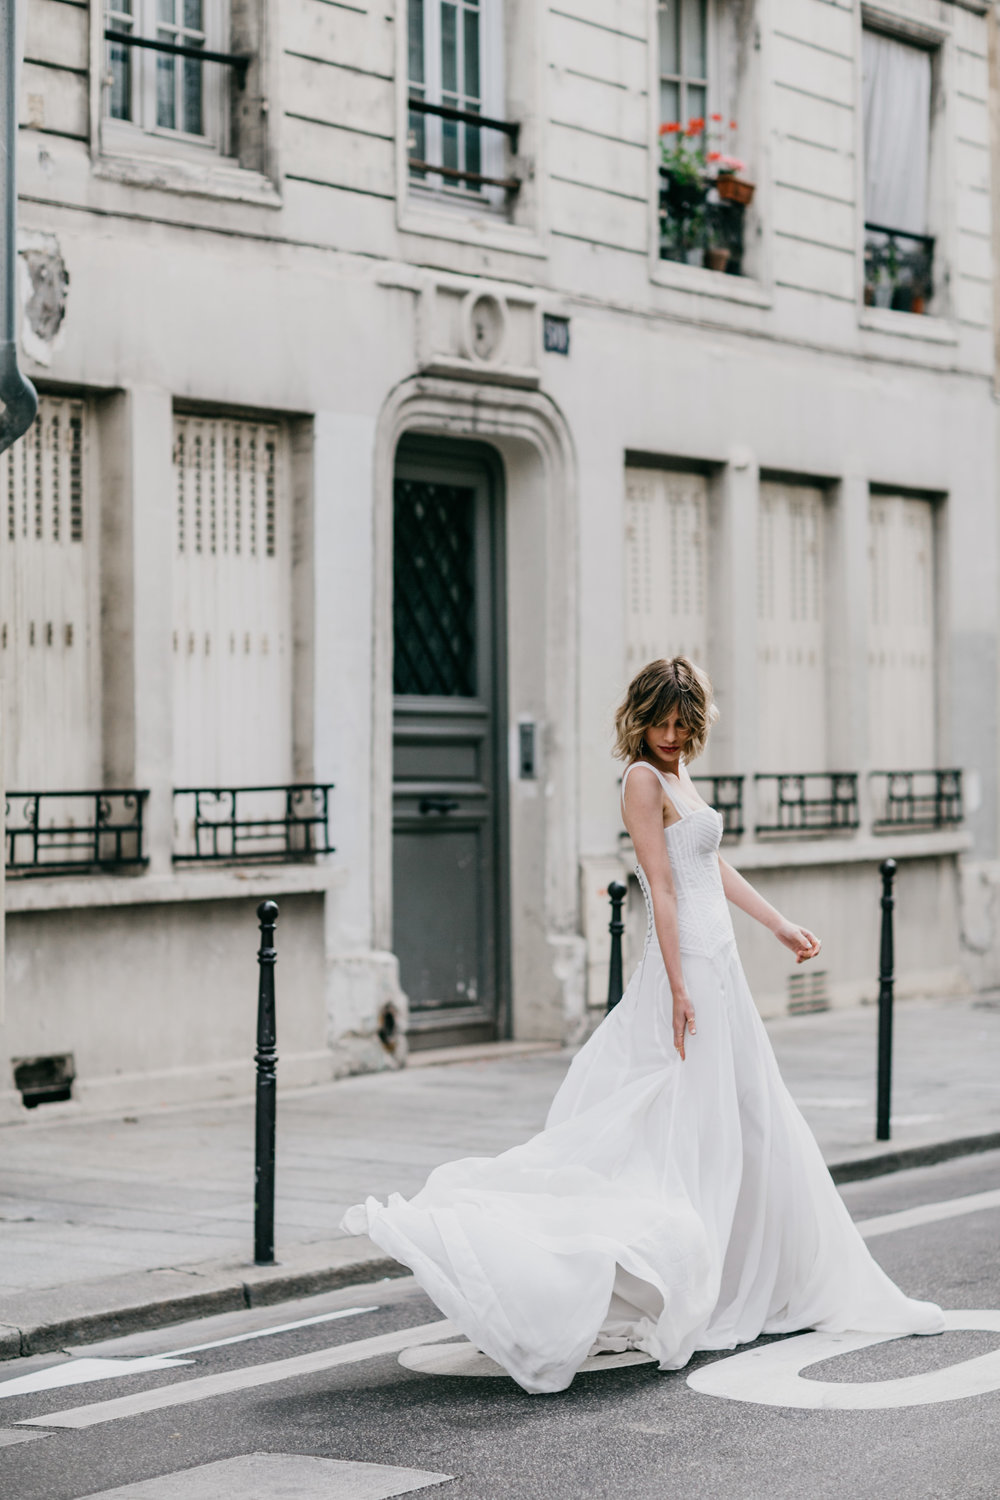 georgia-young-couture-bride-wedding-dressilookbook-paris-ritual-bride-32